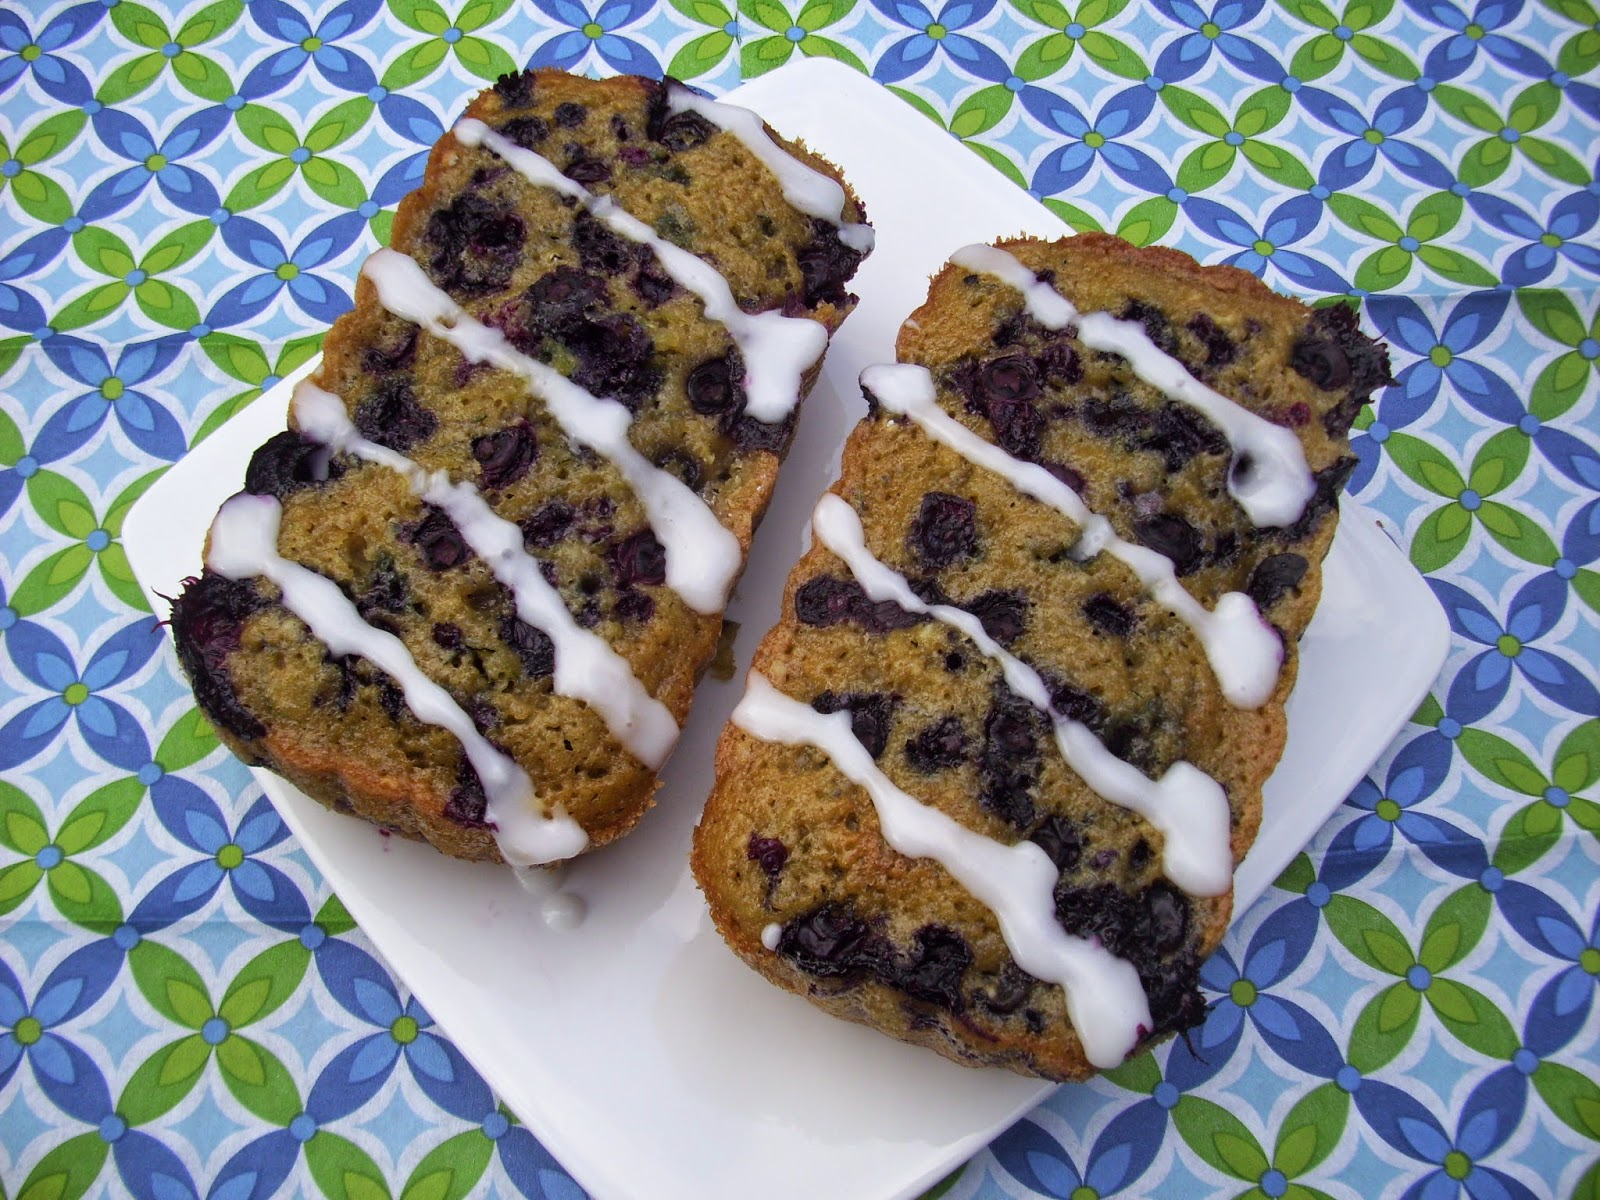 Mini blueberry zucchini loaves with almond glaze - Cook and Post